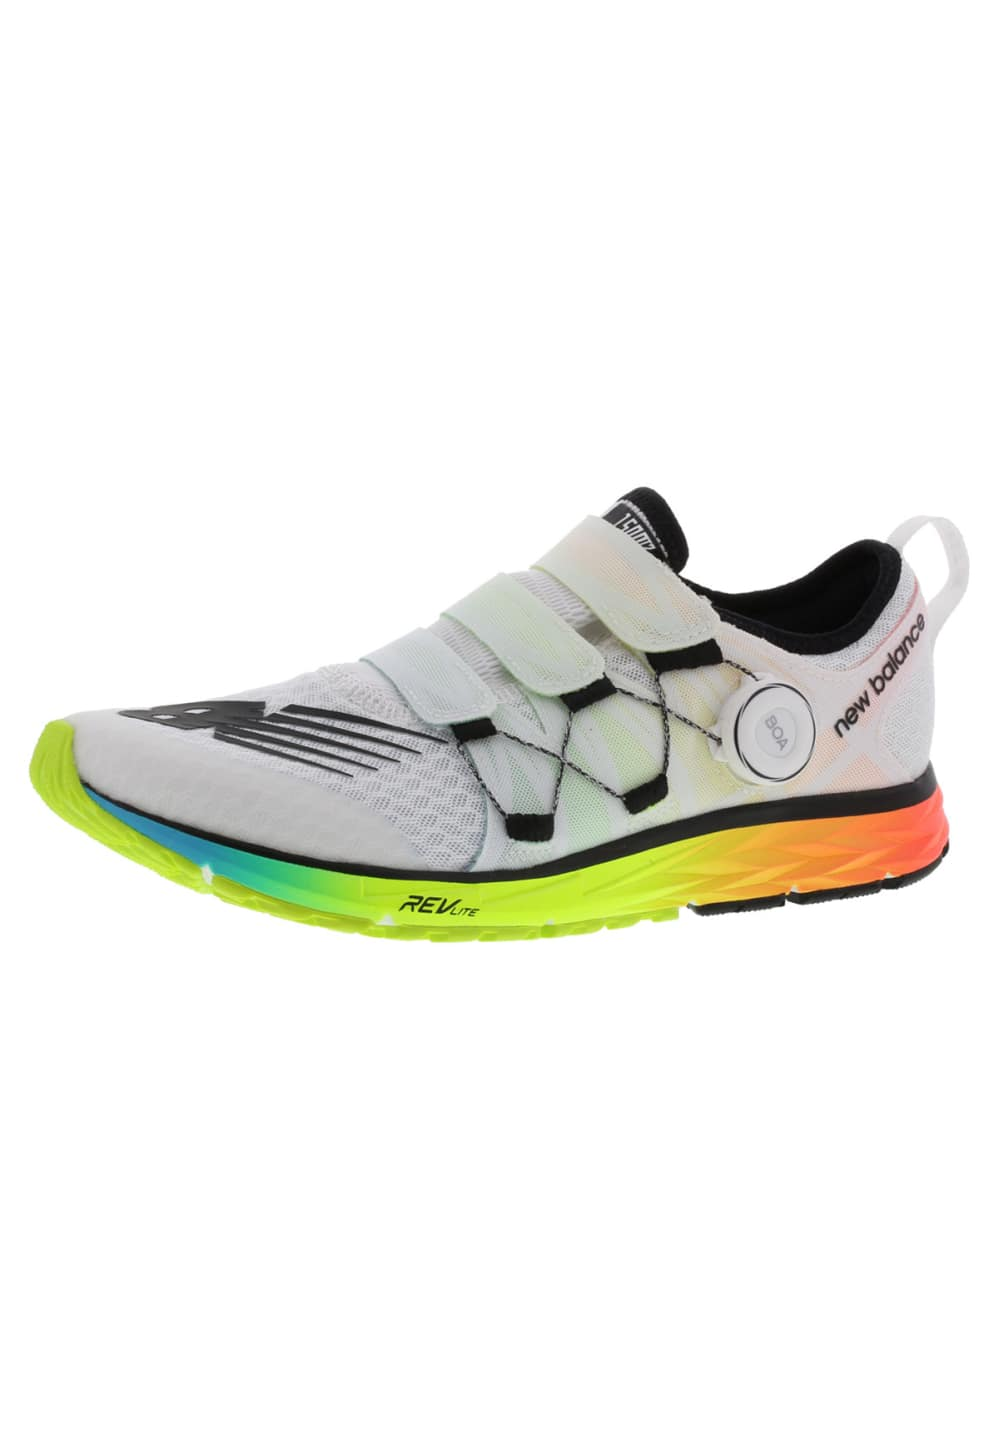 new style 15594 b2736 Next. New Balance. 1500 Boa - Running shoes ...